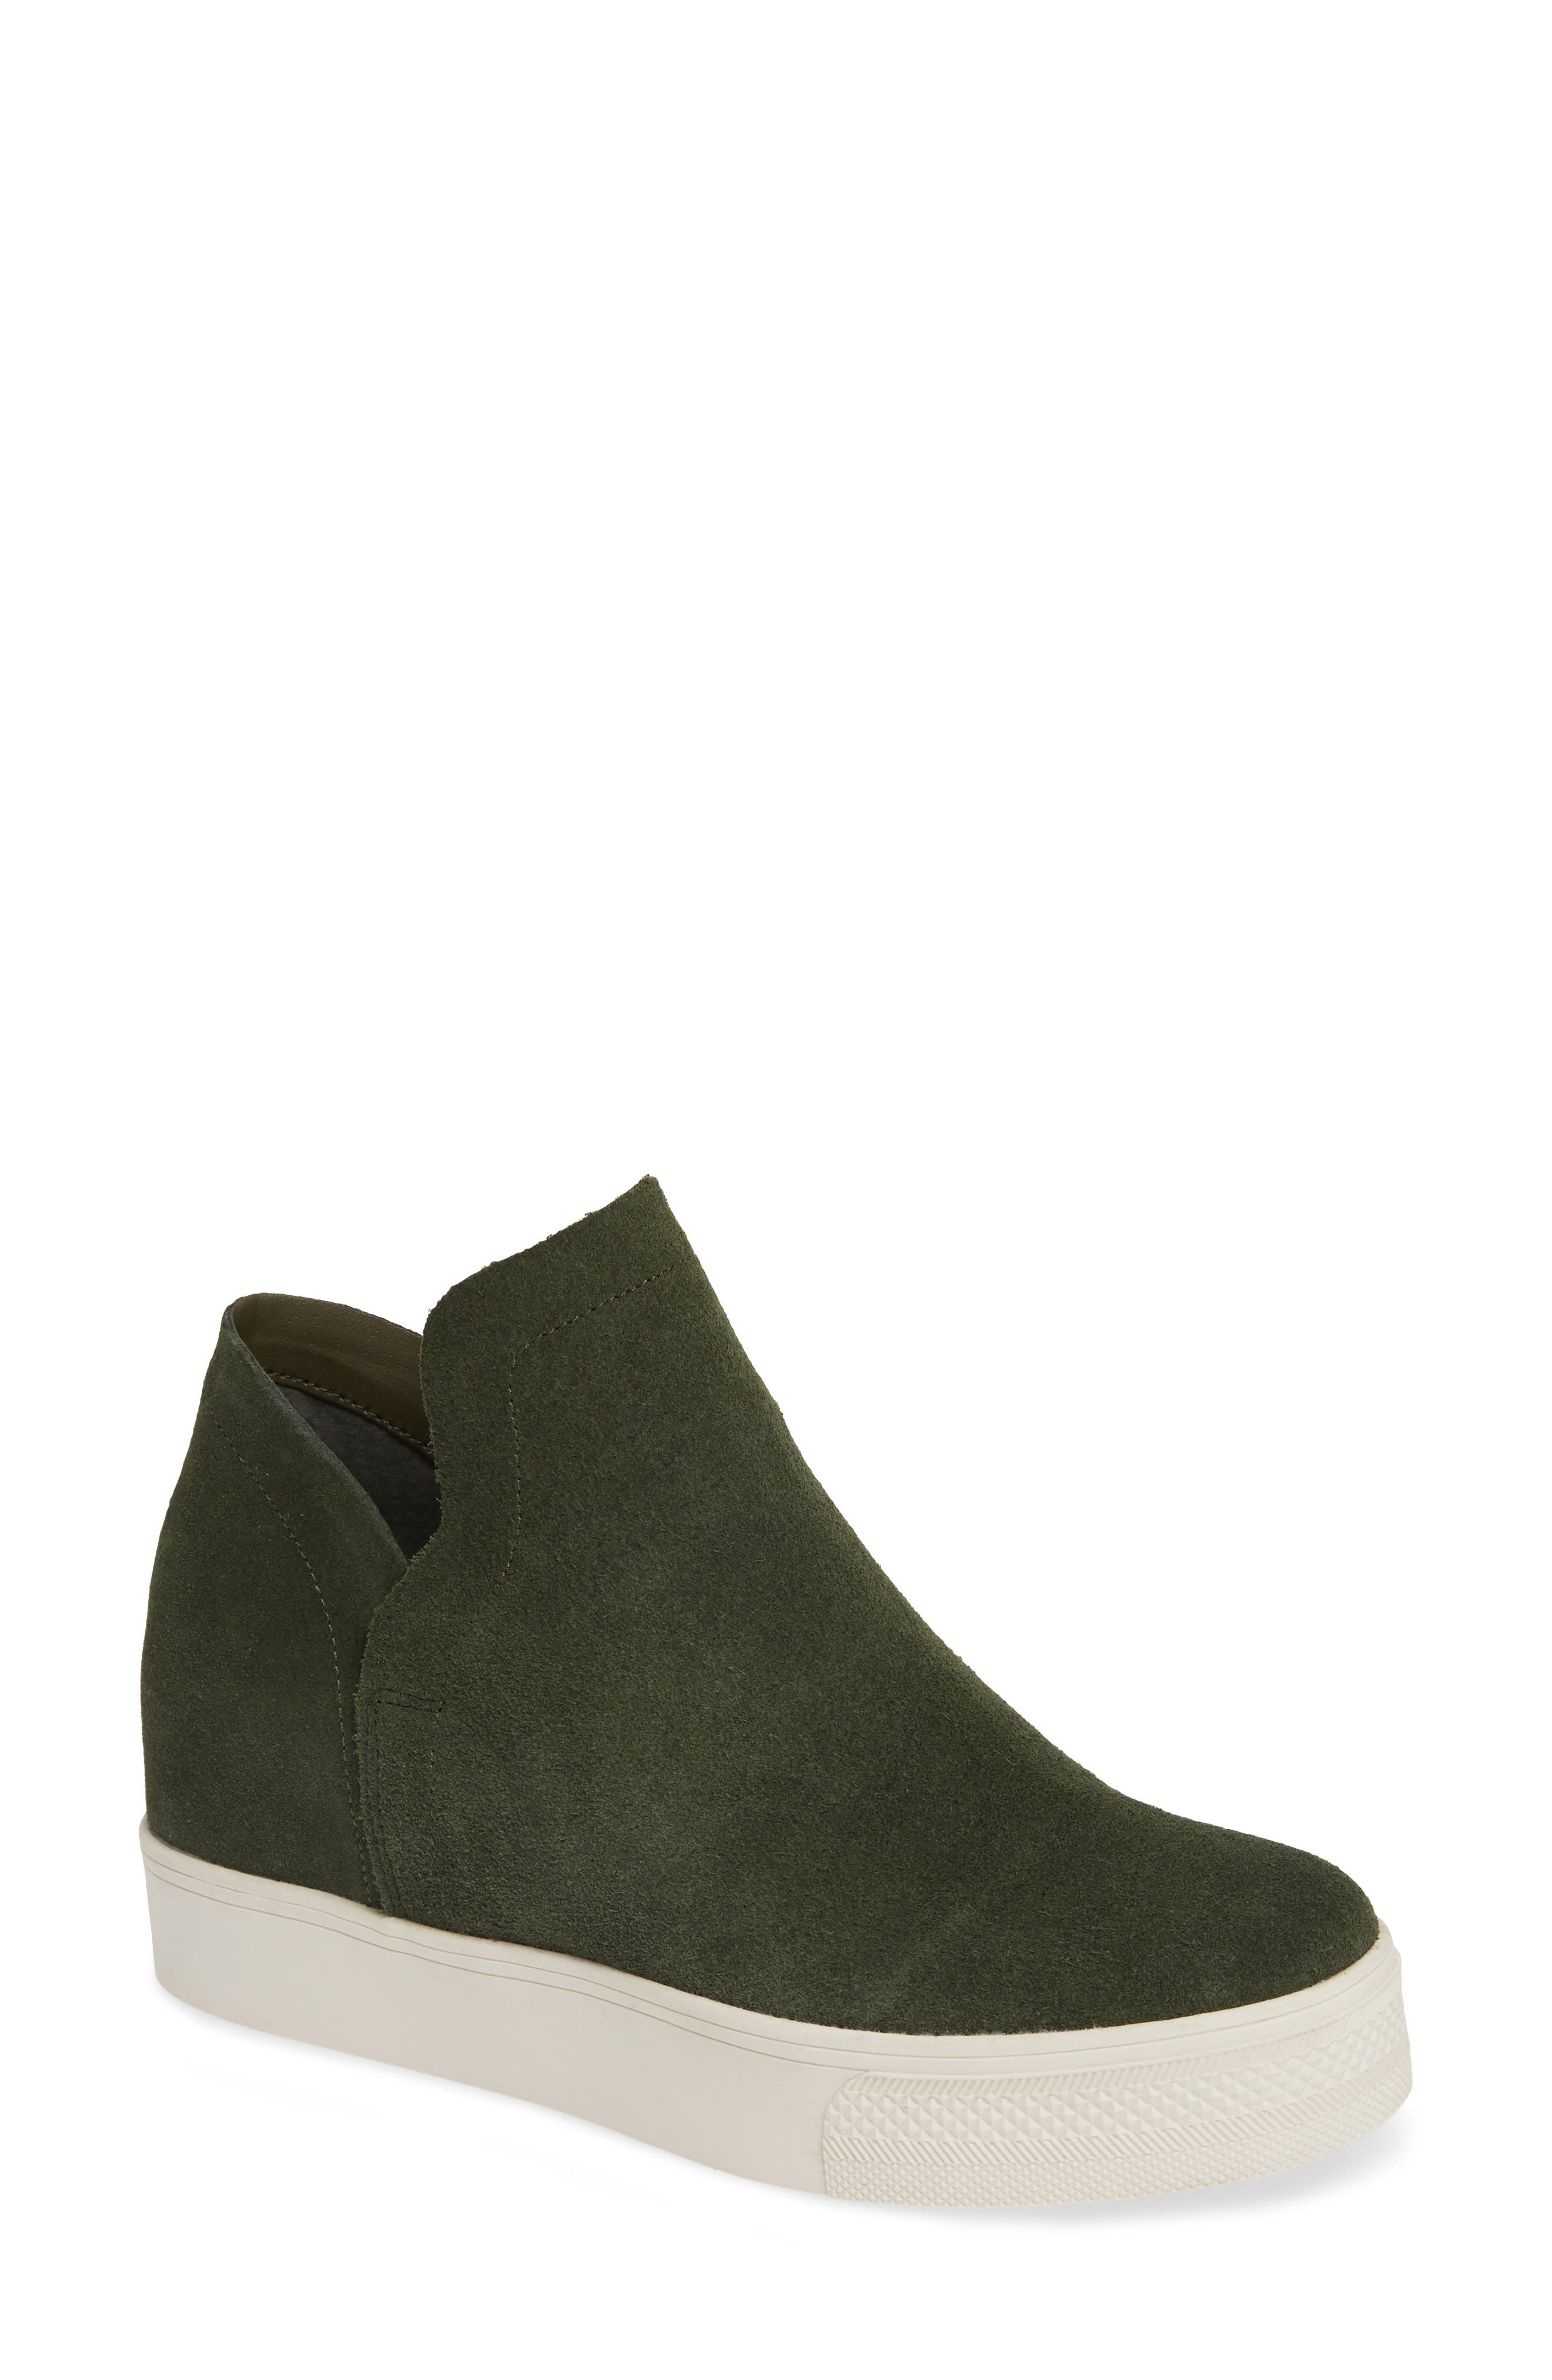 STEVE MADDEN, Wrangle Sneaker, Main thumbnail 1, color, OLIVE SUEDE